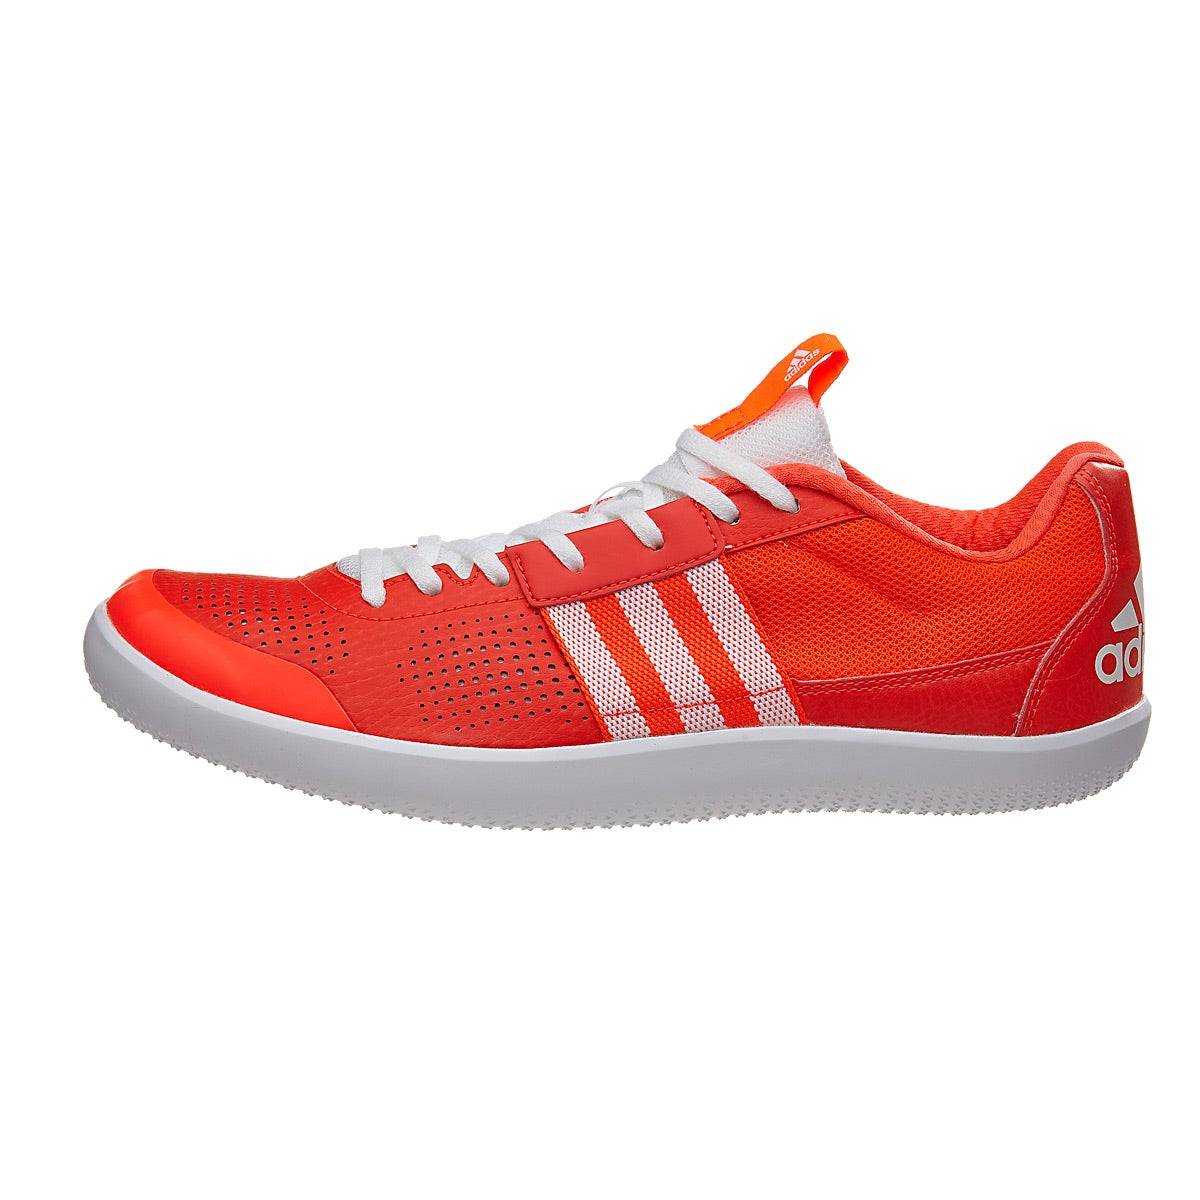 Adidas Solar Red Running Shoes